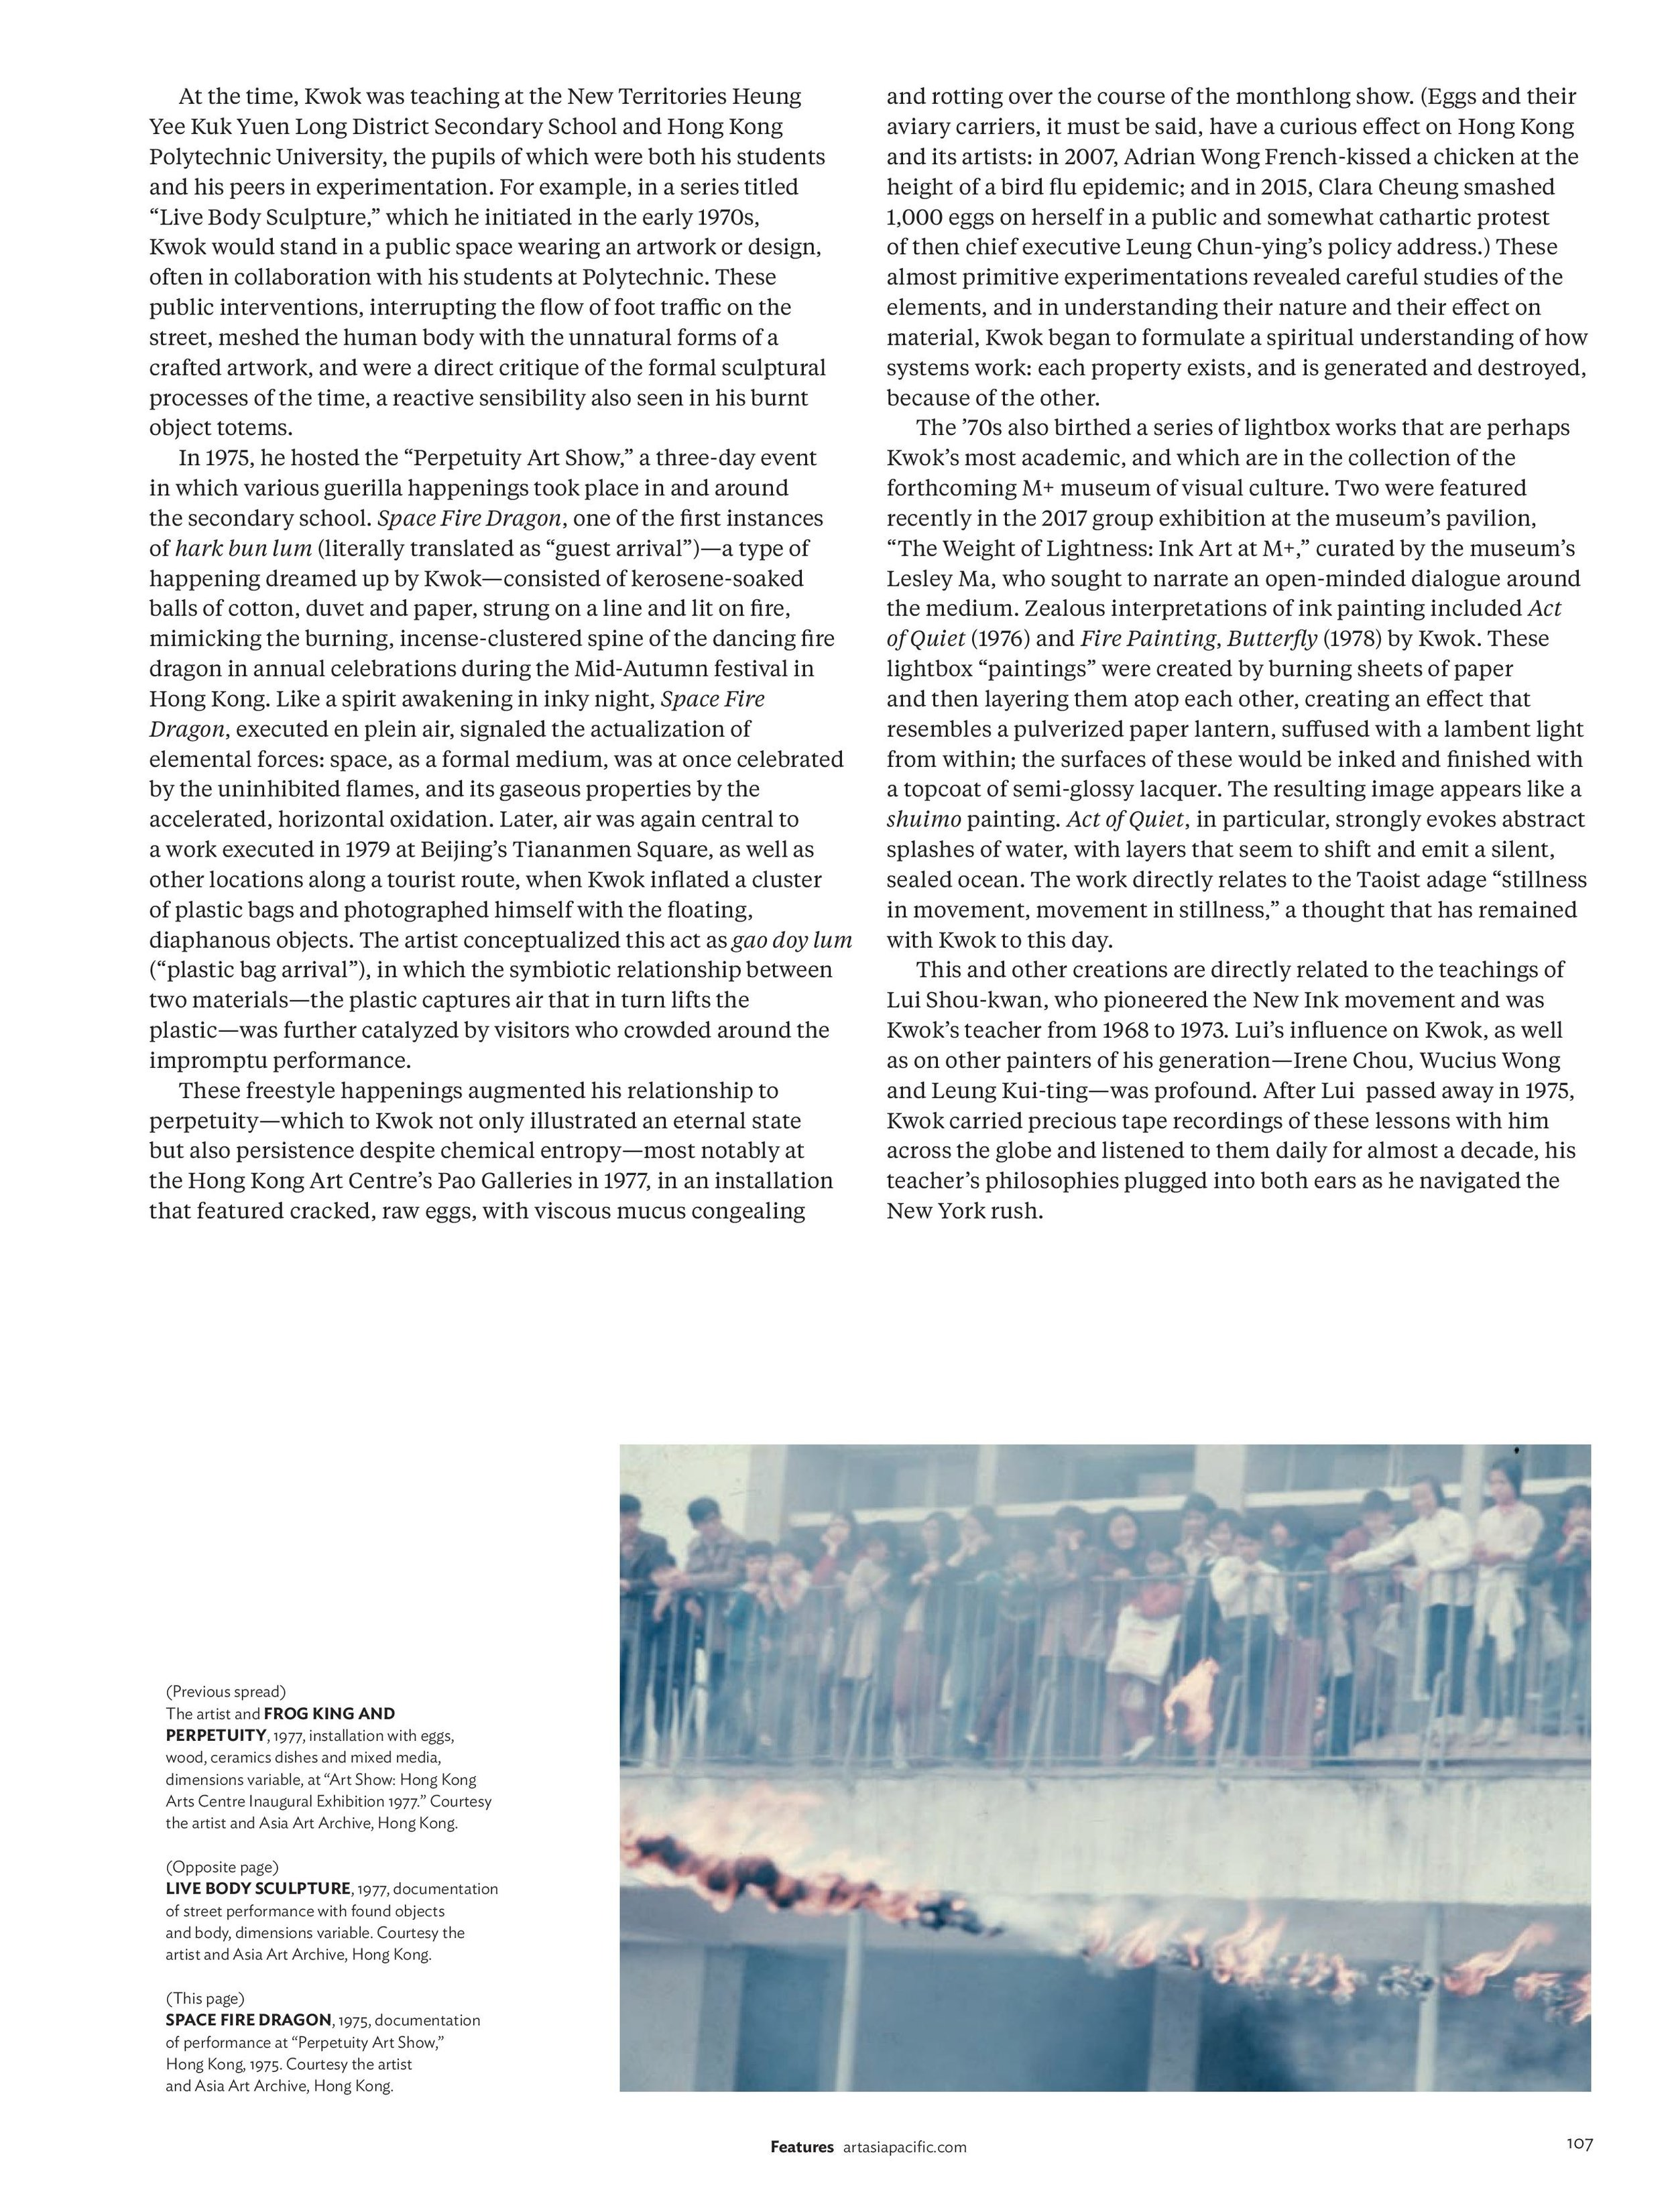 107_Feature_KwokMangHo-page-005.jpg